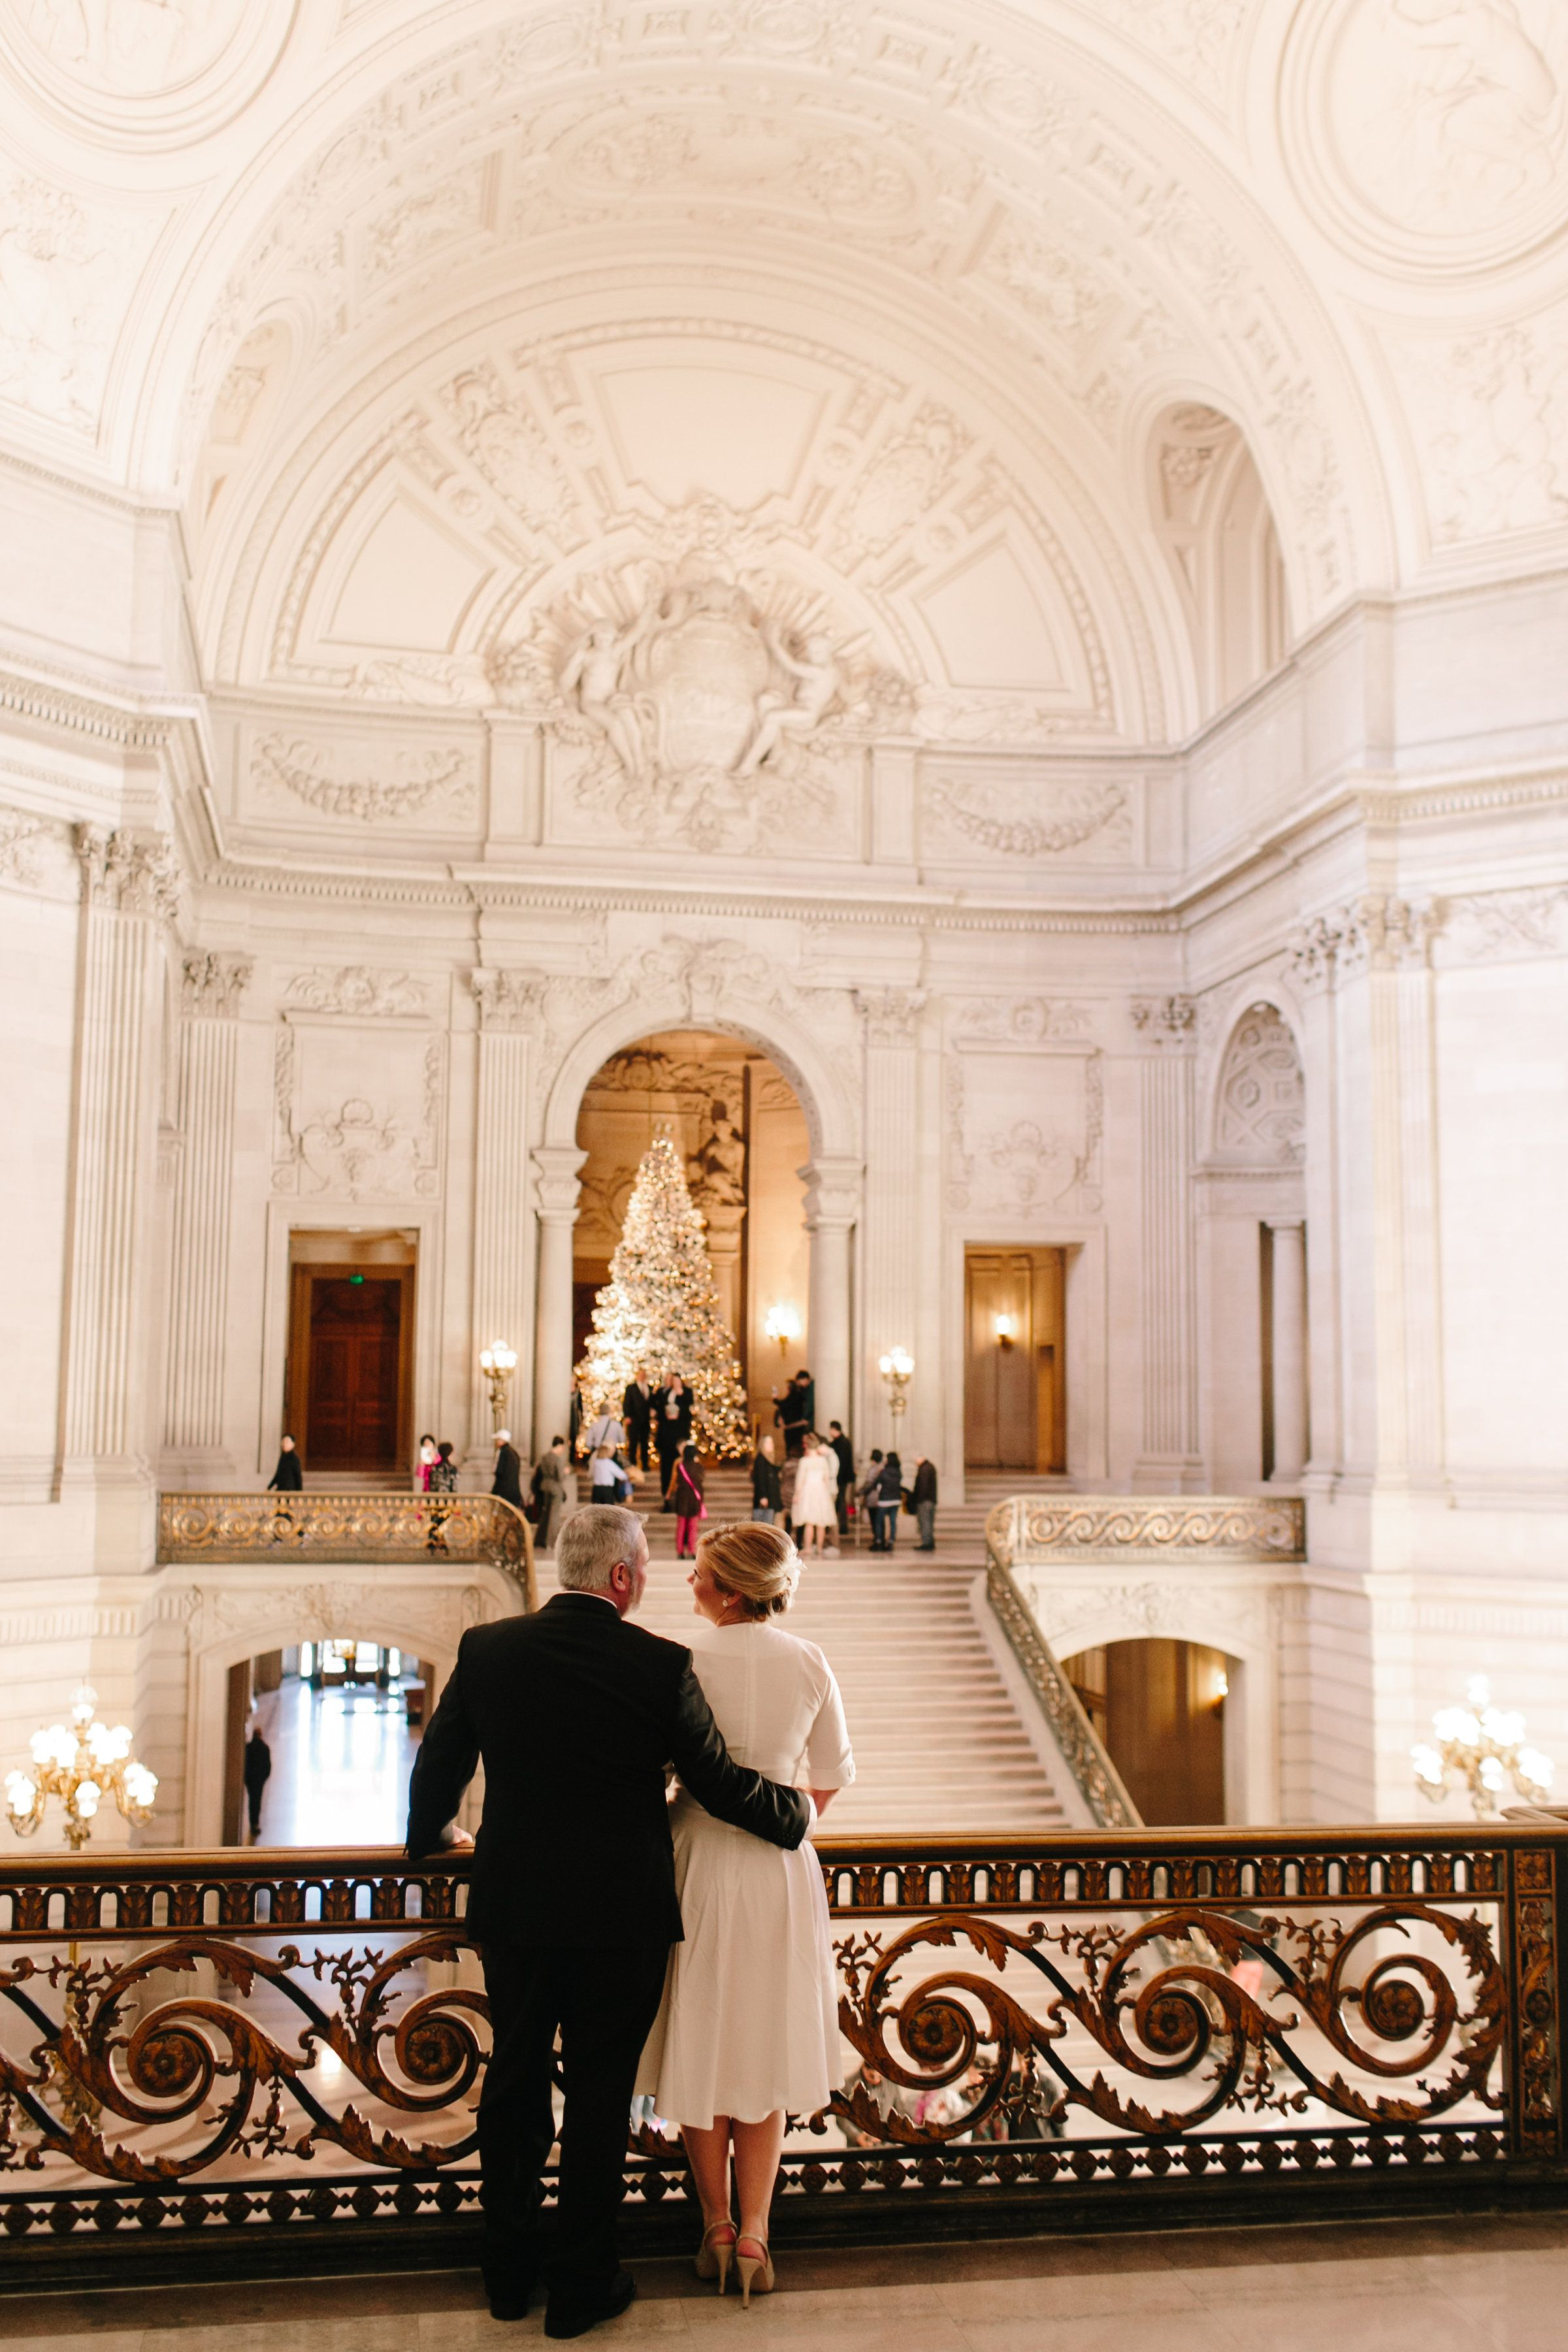 Wedding Venues Included In The Package Price San Francisco Beaches City Hall Gardens Palace Grounds Waterside Gazebo Take A Look